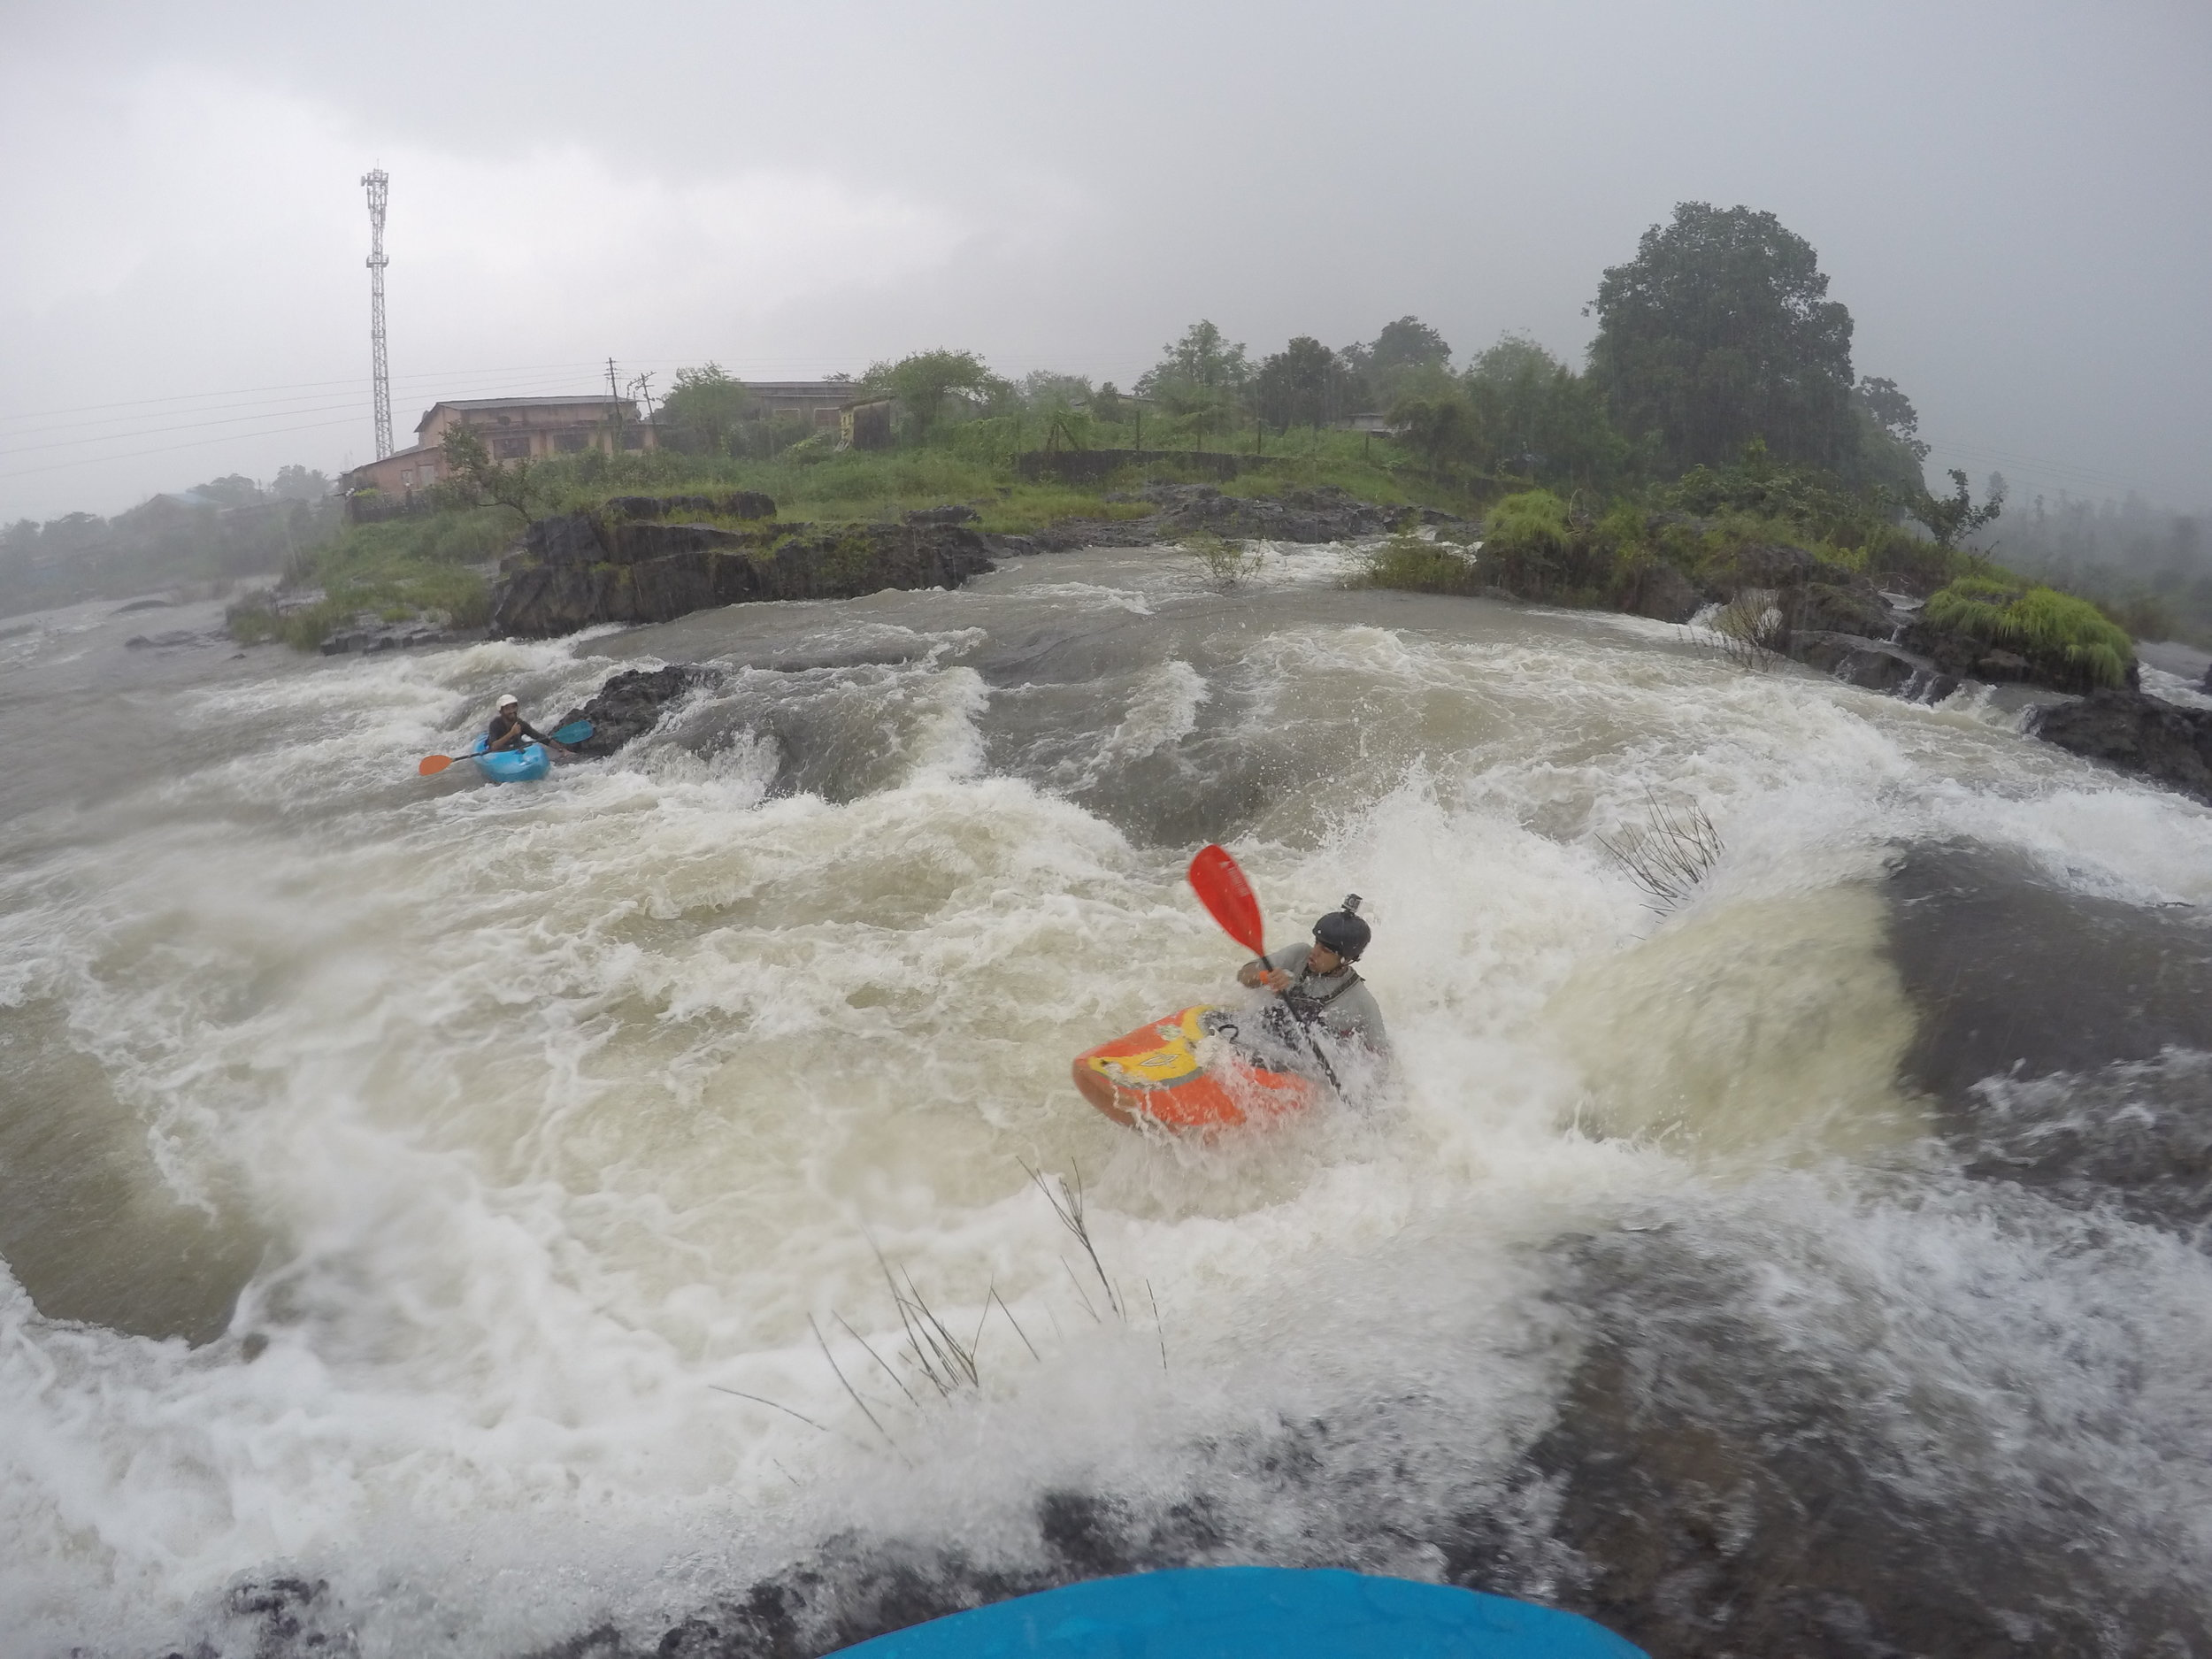 The awesome rains received creating some sublime whitewater.